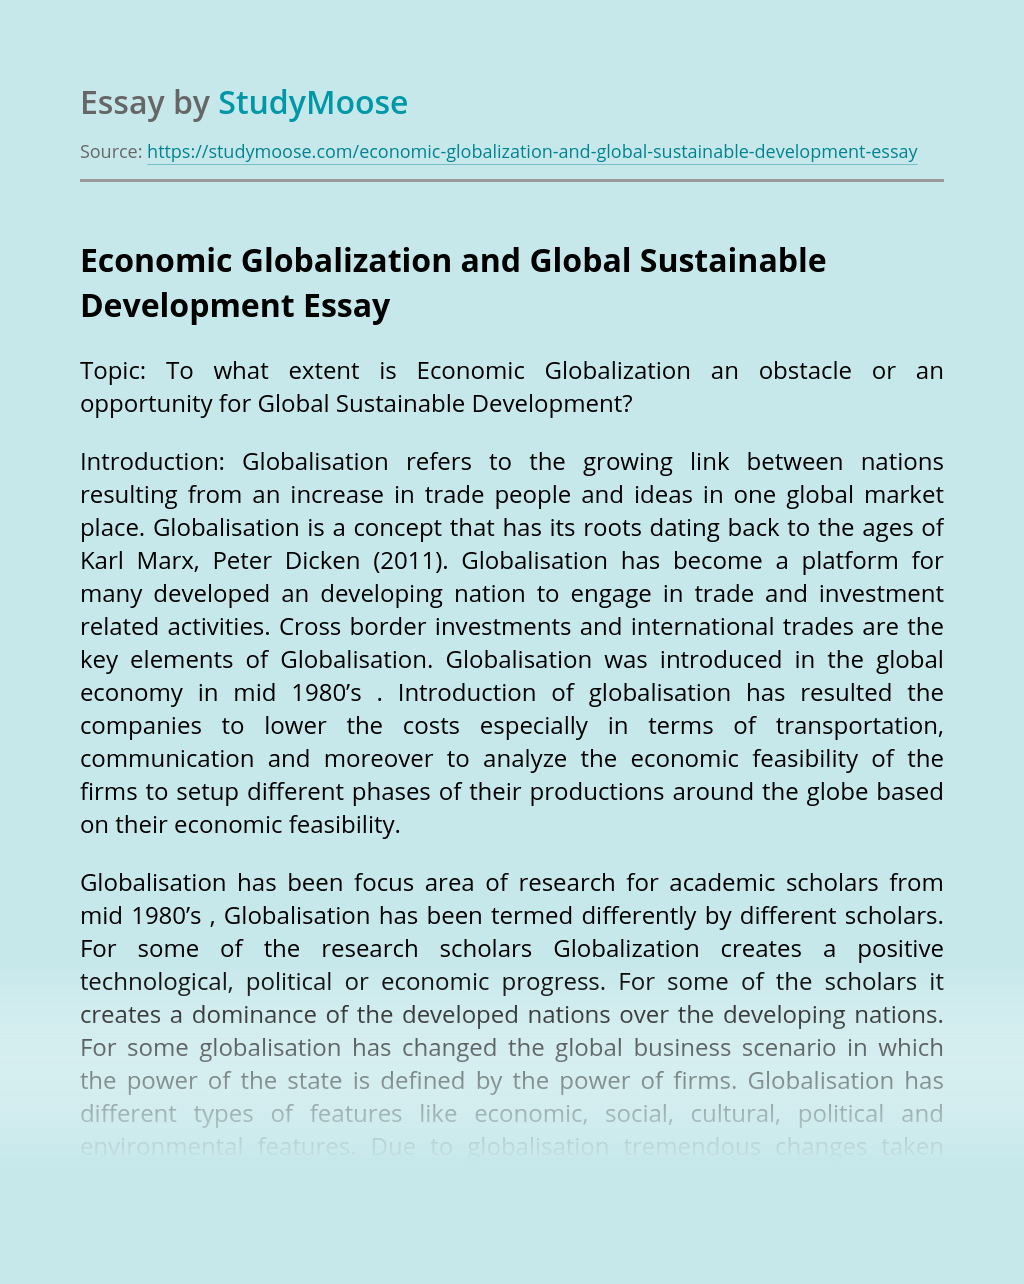 Economic Globalization and Global Sustainable Development